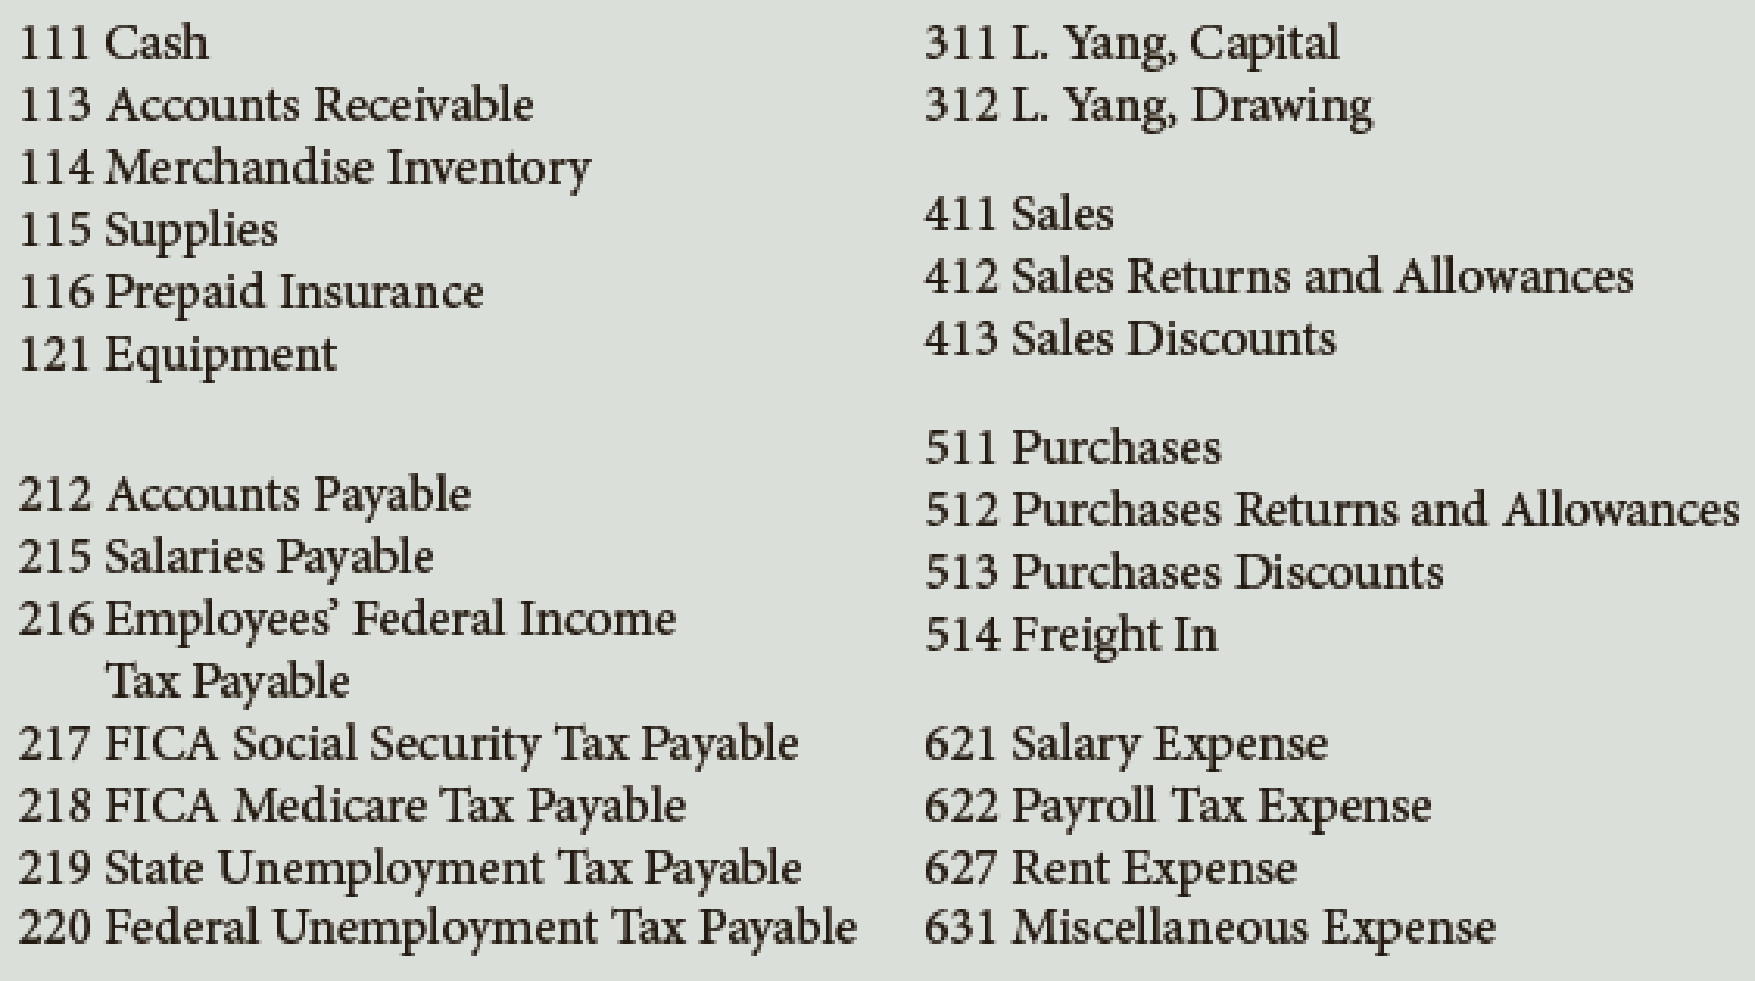 Chapter 10, Problem 4PB, The following transactions were completed by Yang Restaurant Equipment during January, the first